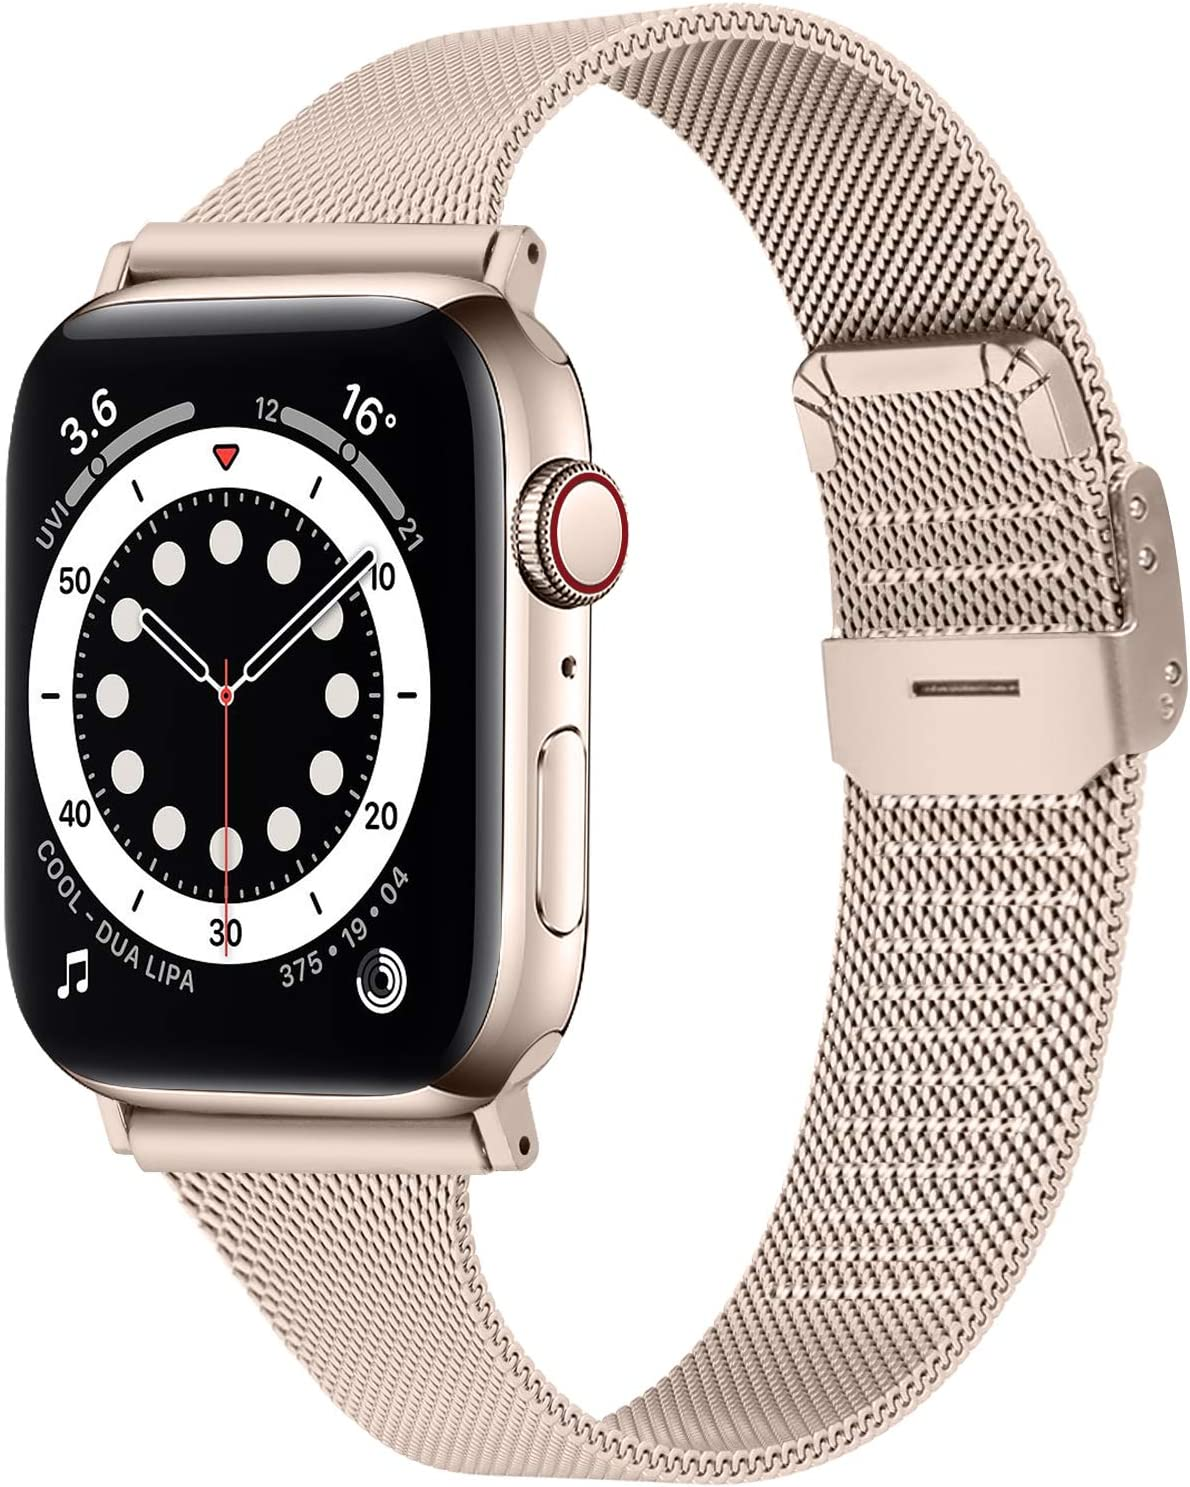 OULUCCI Slim Bands Compatible with Apple Watch Band 38mm 40mm 42mm 44mm, Adjustable Metal Mesh Replacement Starp for iWatch Series 6/SE/5/4/3/2/1 Women Men